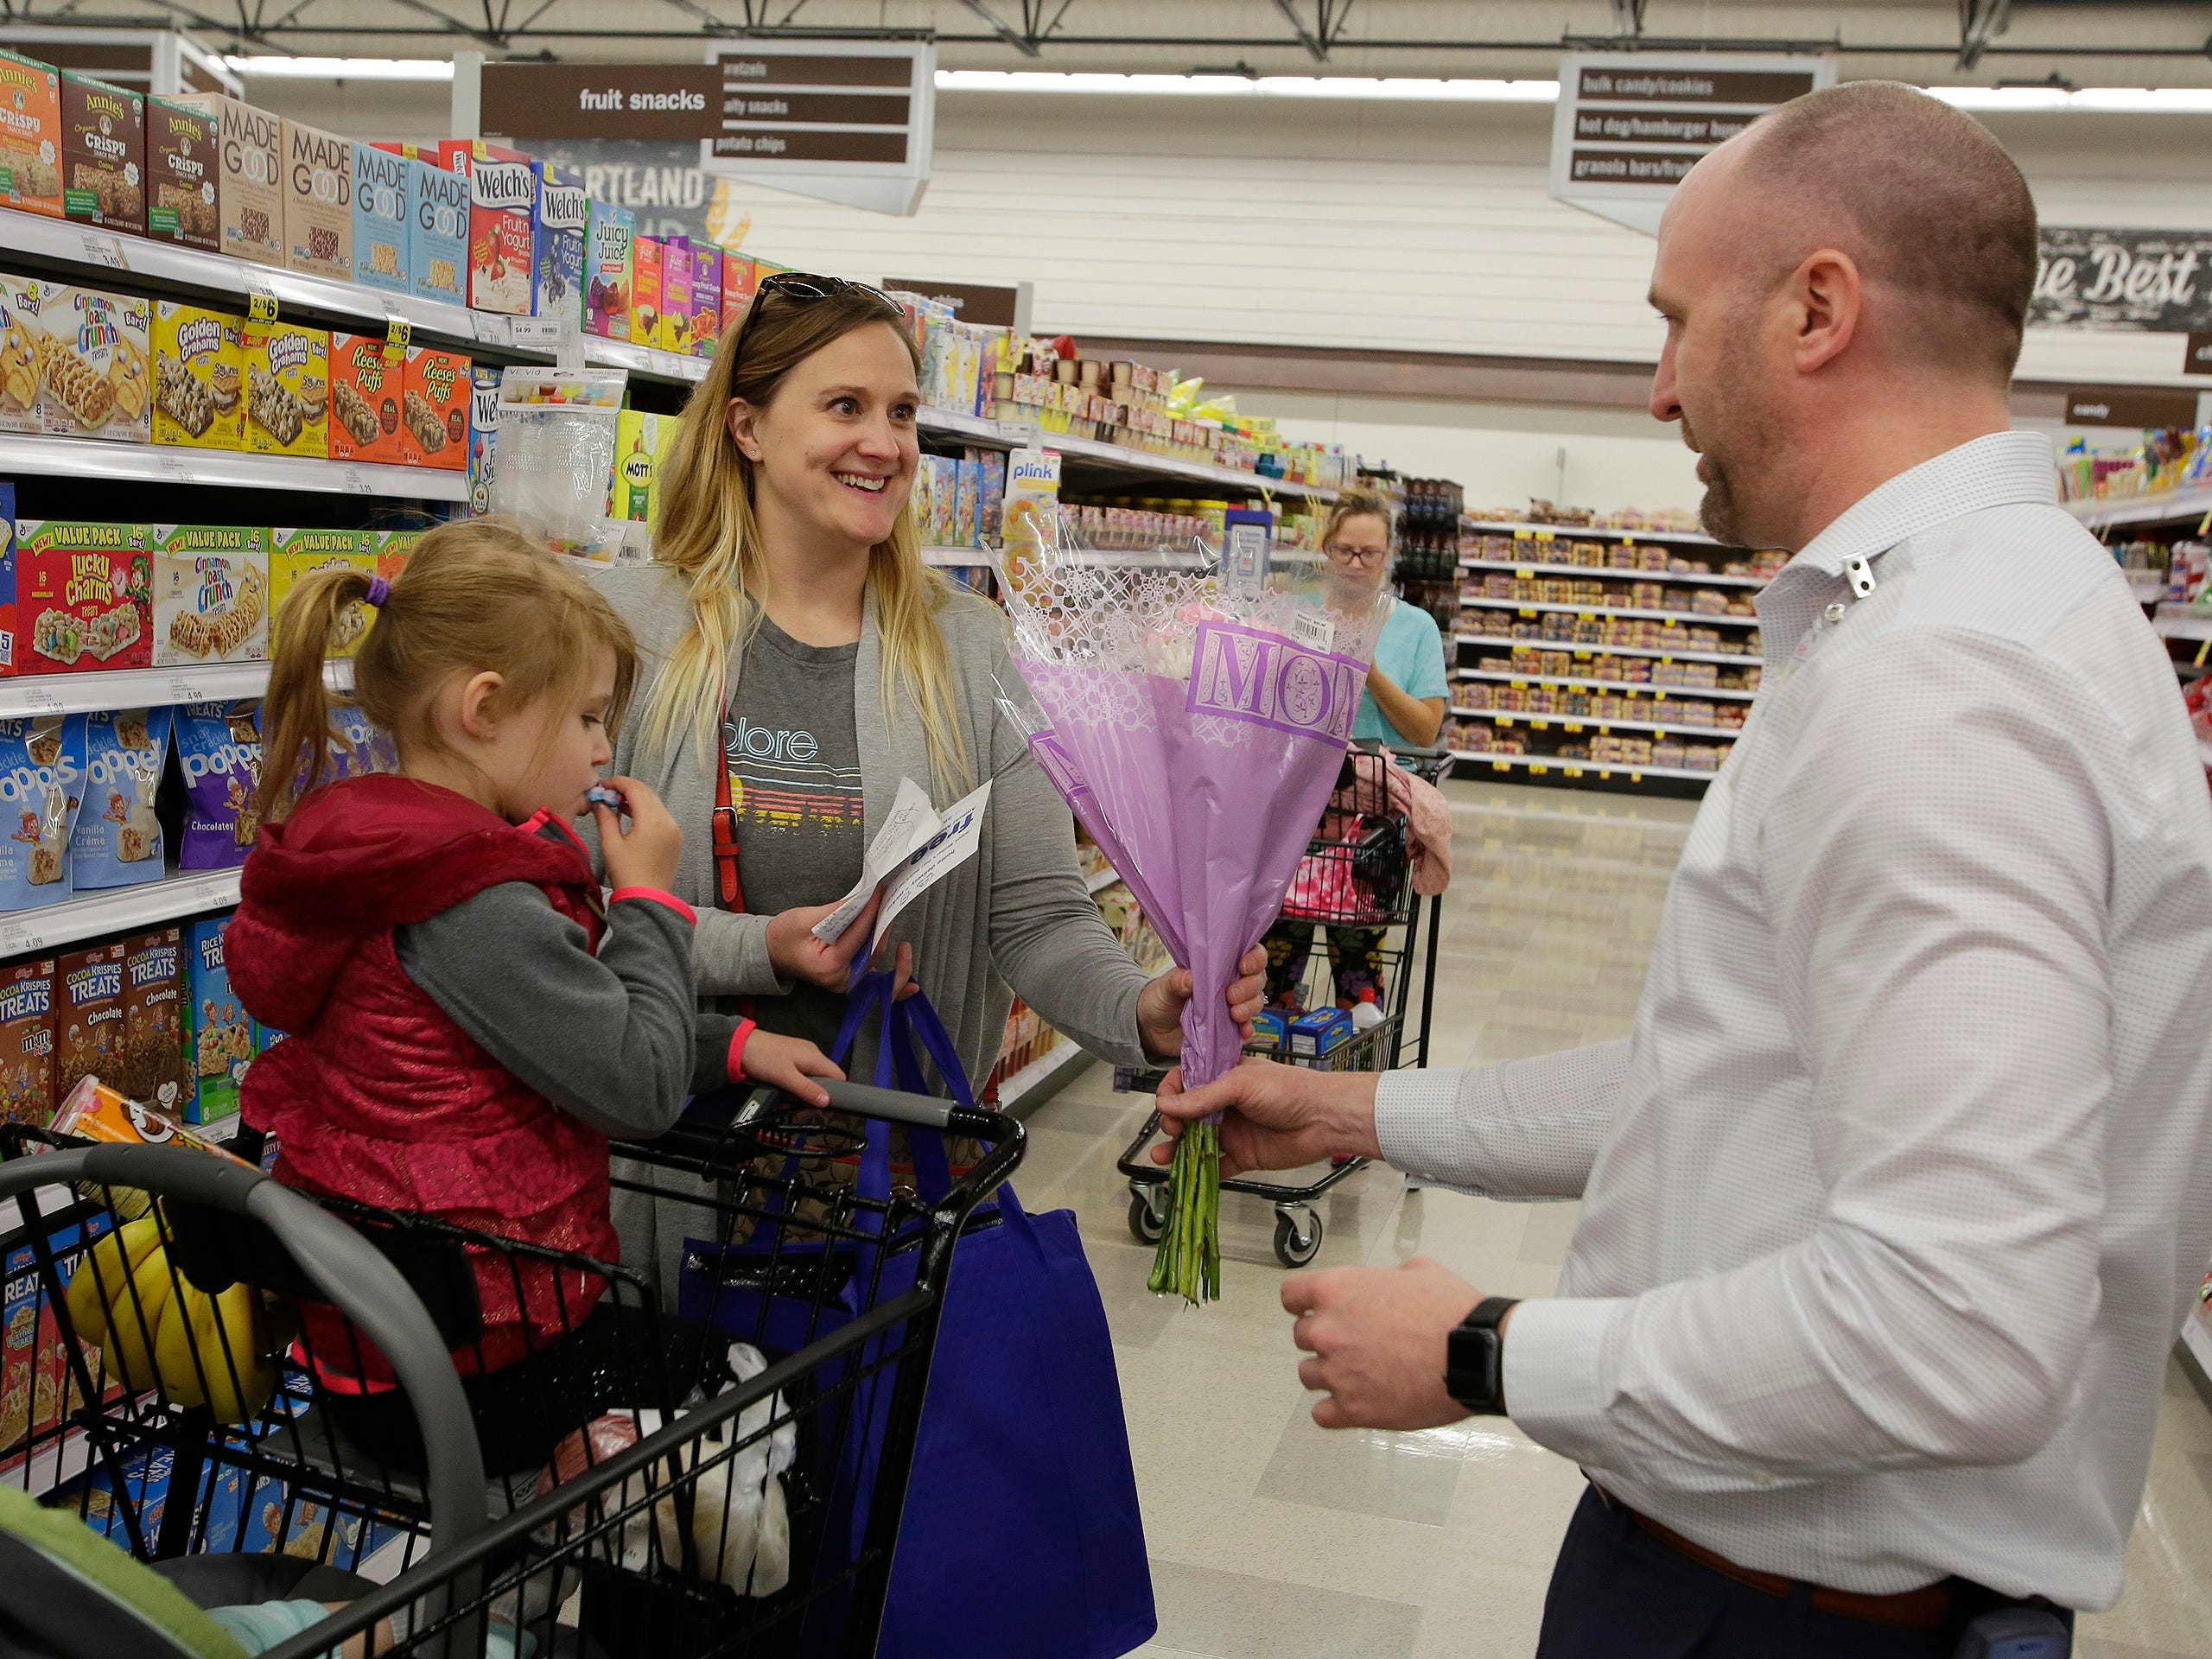 Shelly Nole of Sheboygan, center, is all smiles as she is presented gifts by Meijer Store Director Jeff  Kietzman at Meijer, Saturday, May 11, 2019, in Sheboygan, Wis. The store randomly handed out gifts to moms Saturday. Noles had her children Hannah 3, and Amelia, 11 months with her.